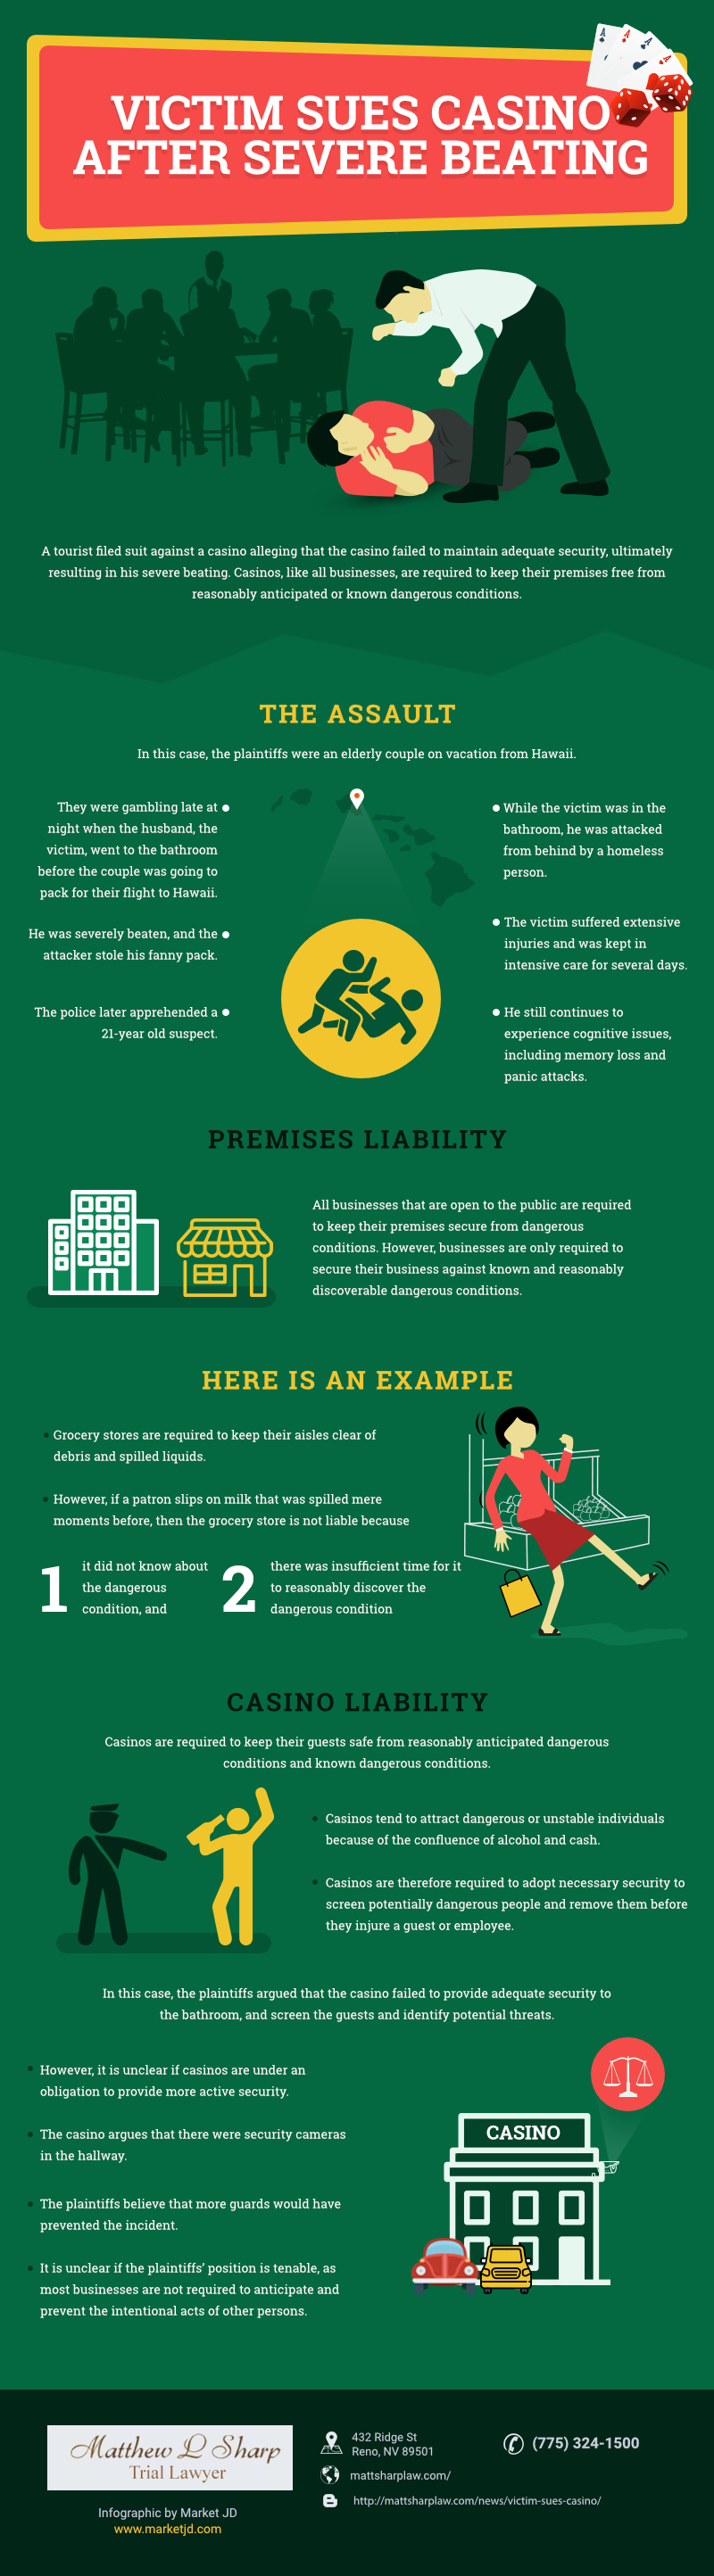 infographic_Severe Beating at Casino Victim Sues